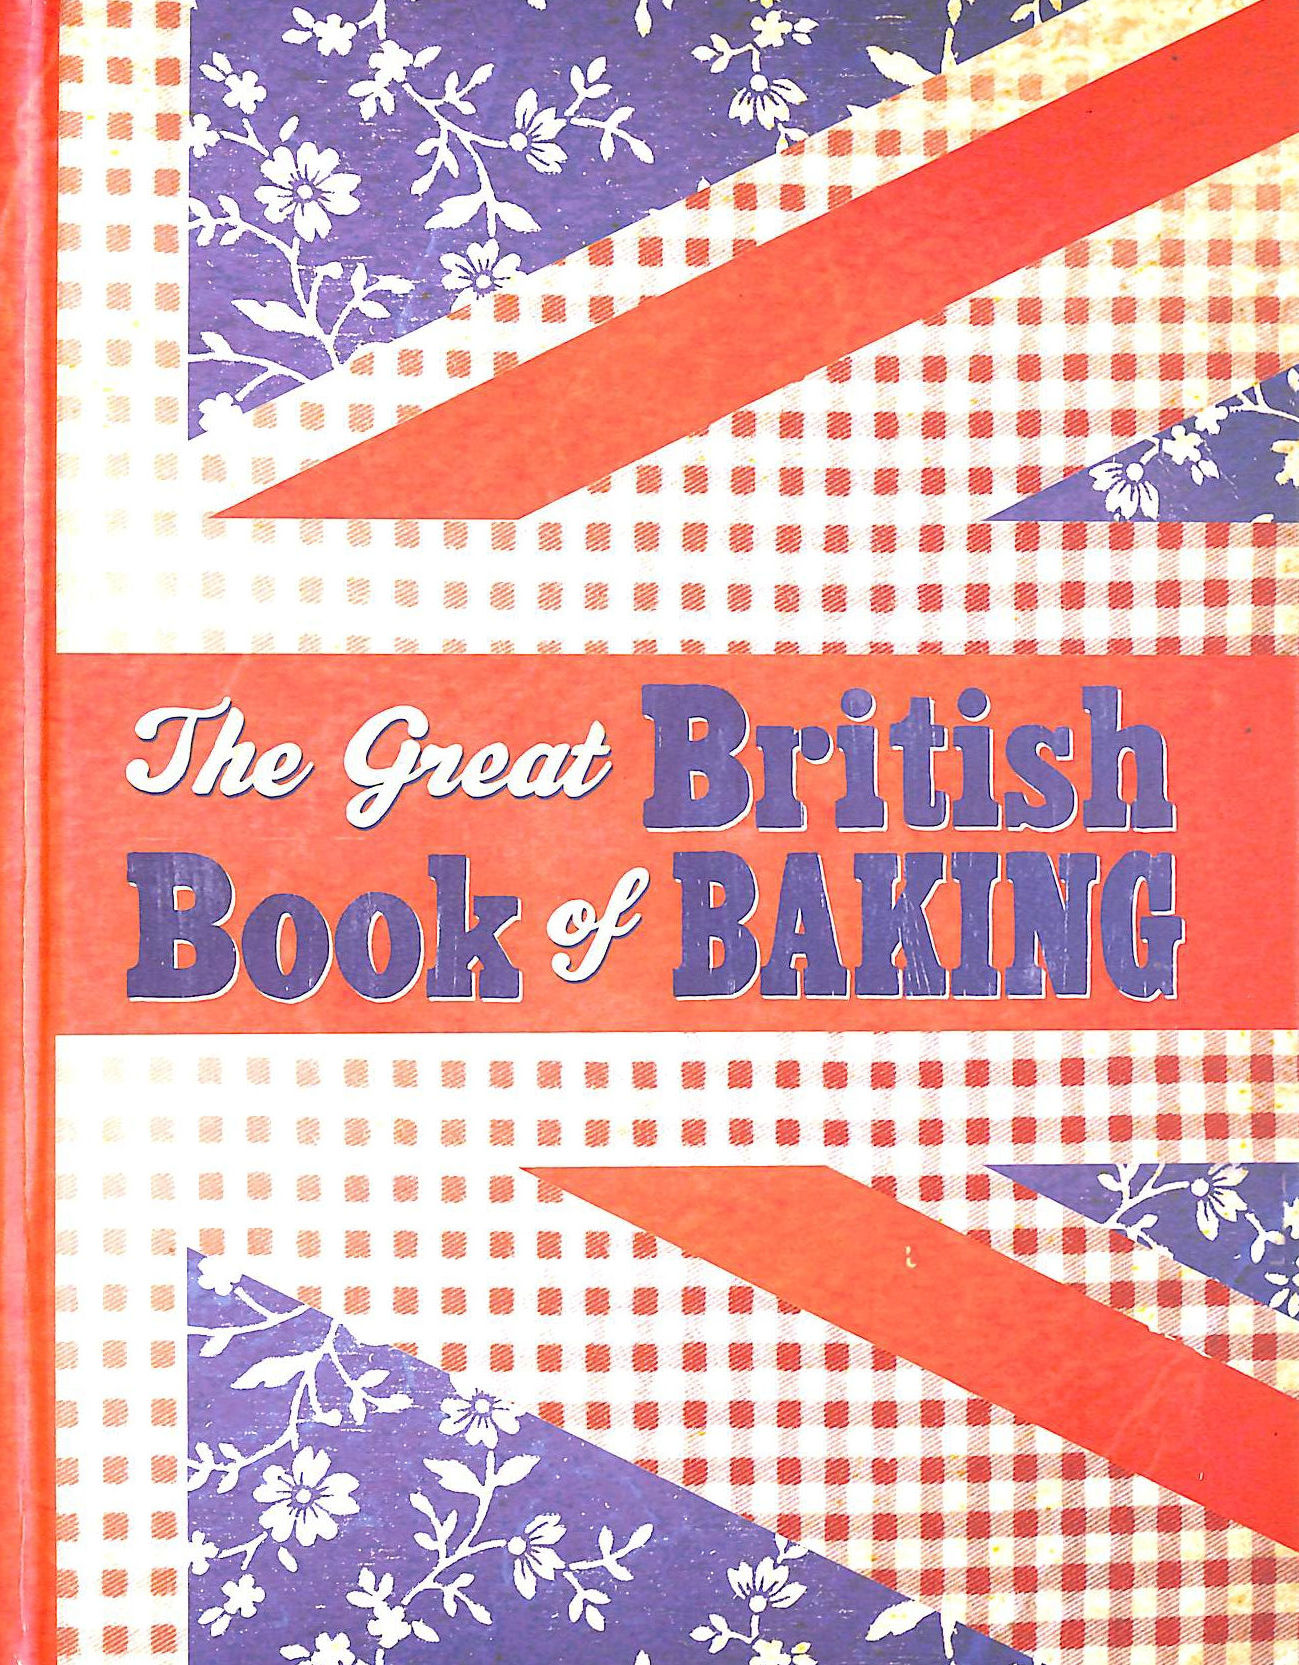 LINDA COLLISTER - The Great British Book of Baking: 120 best-loved recipes from teatime treats to pies and pasties